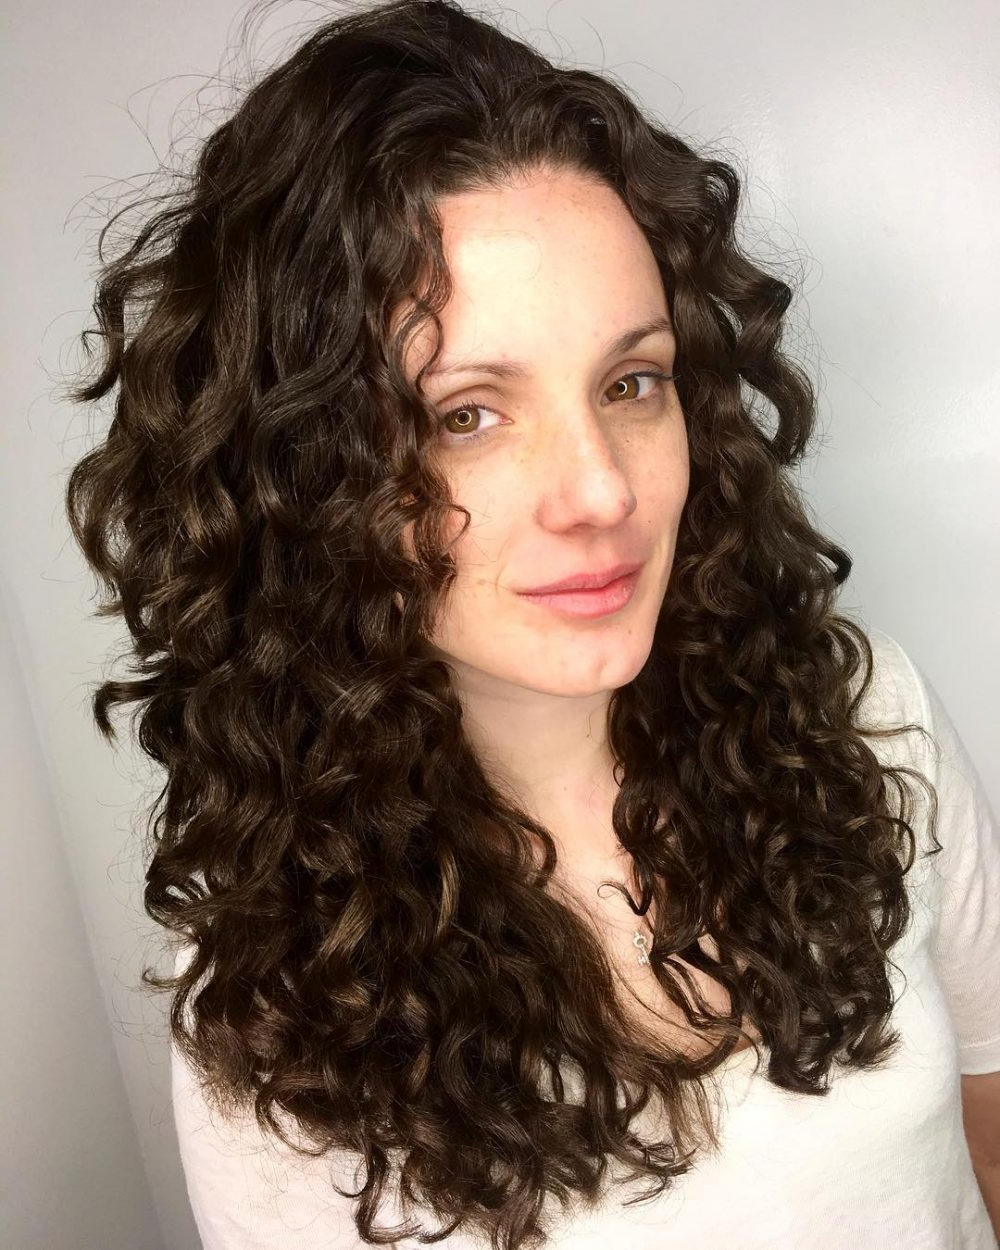 25 Cutest Long Curly Hair Ideas Of 2018 Pertaining To Short Bob Hairstyles With Whipped Curls And Babylights (View 1 of 20)